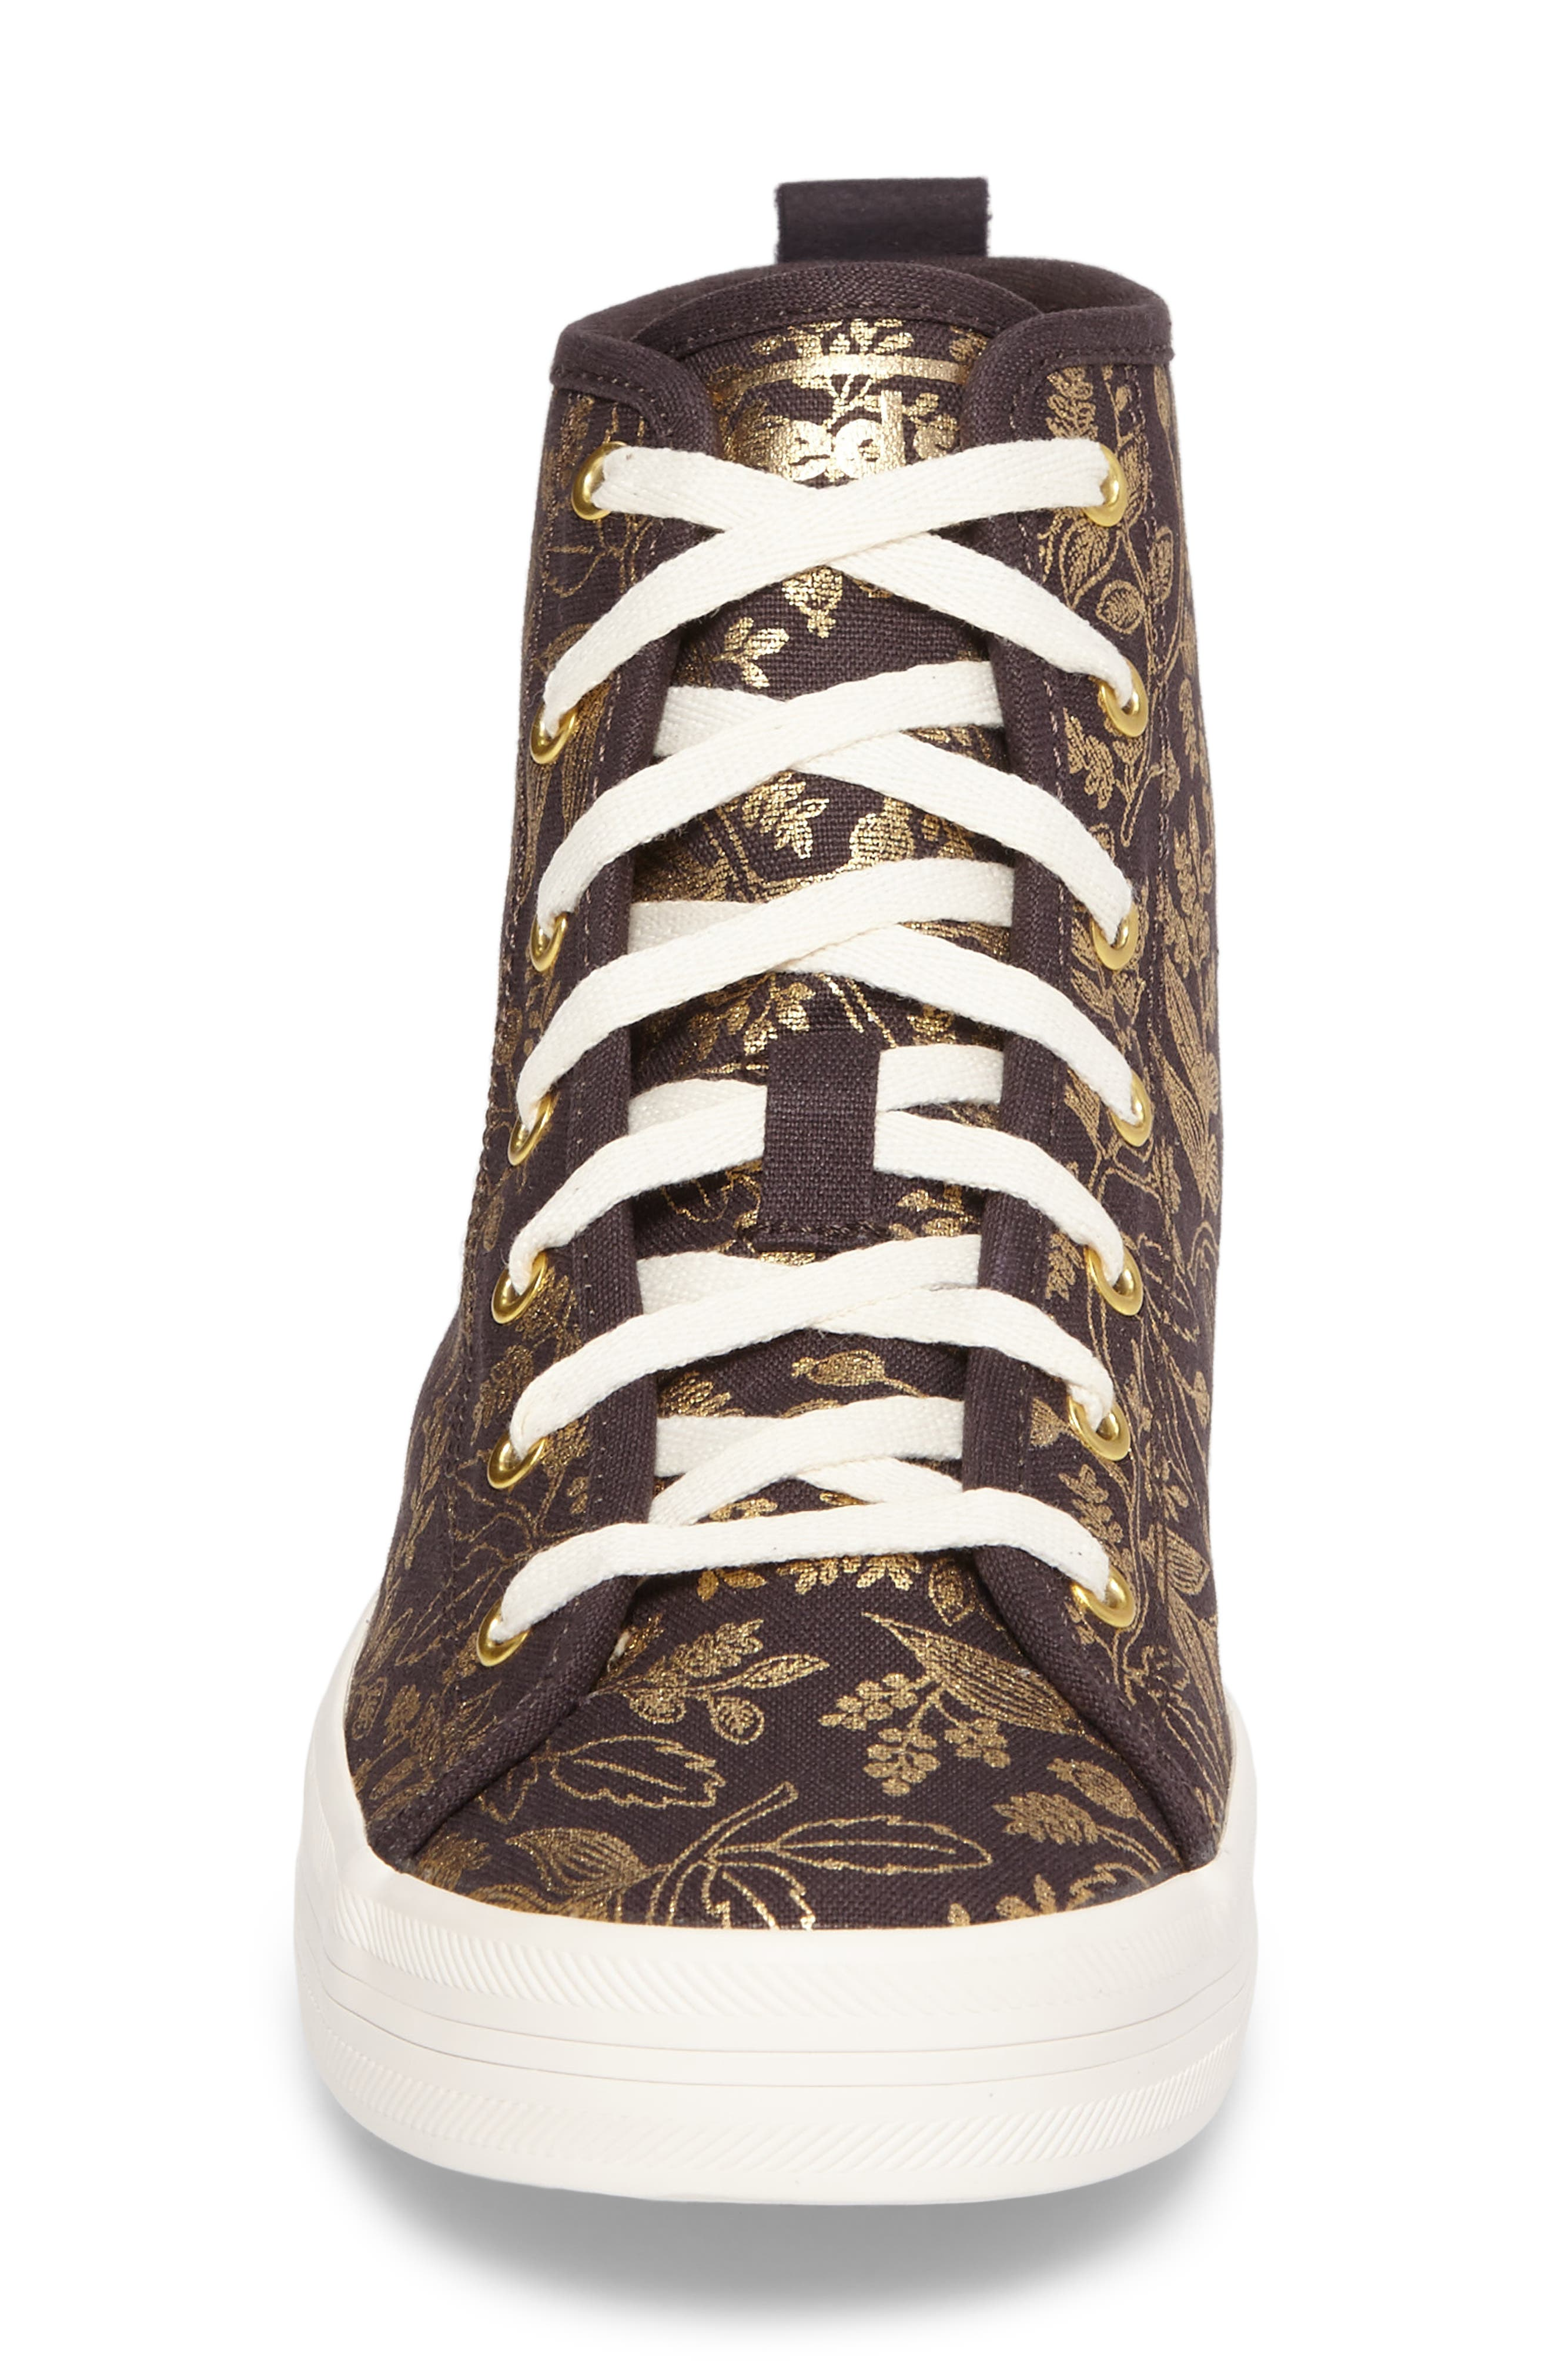 x Rifle Paper Co. Queen Anne High Top Sneaker,                             Alternate thumbnail 4, color,                             710